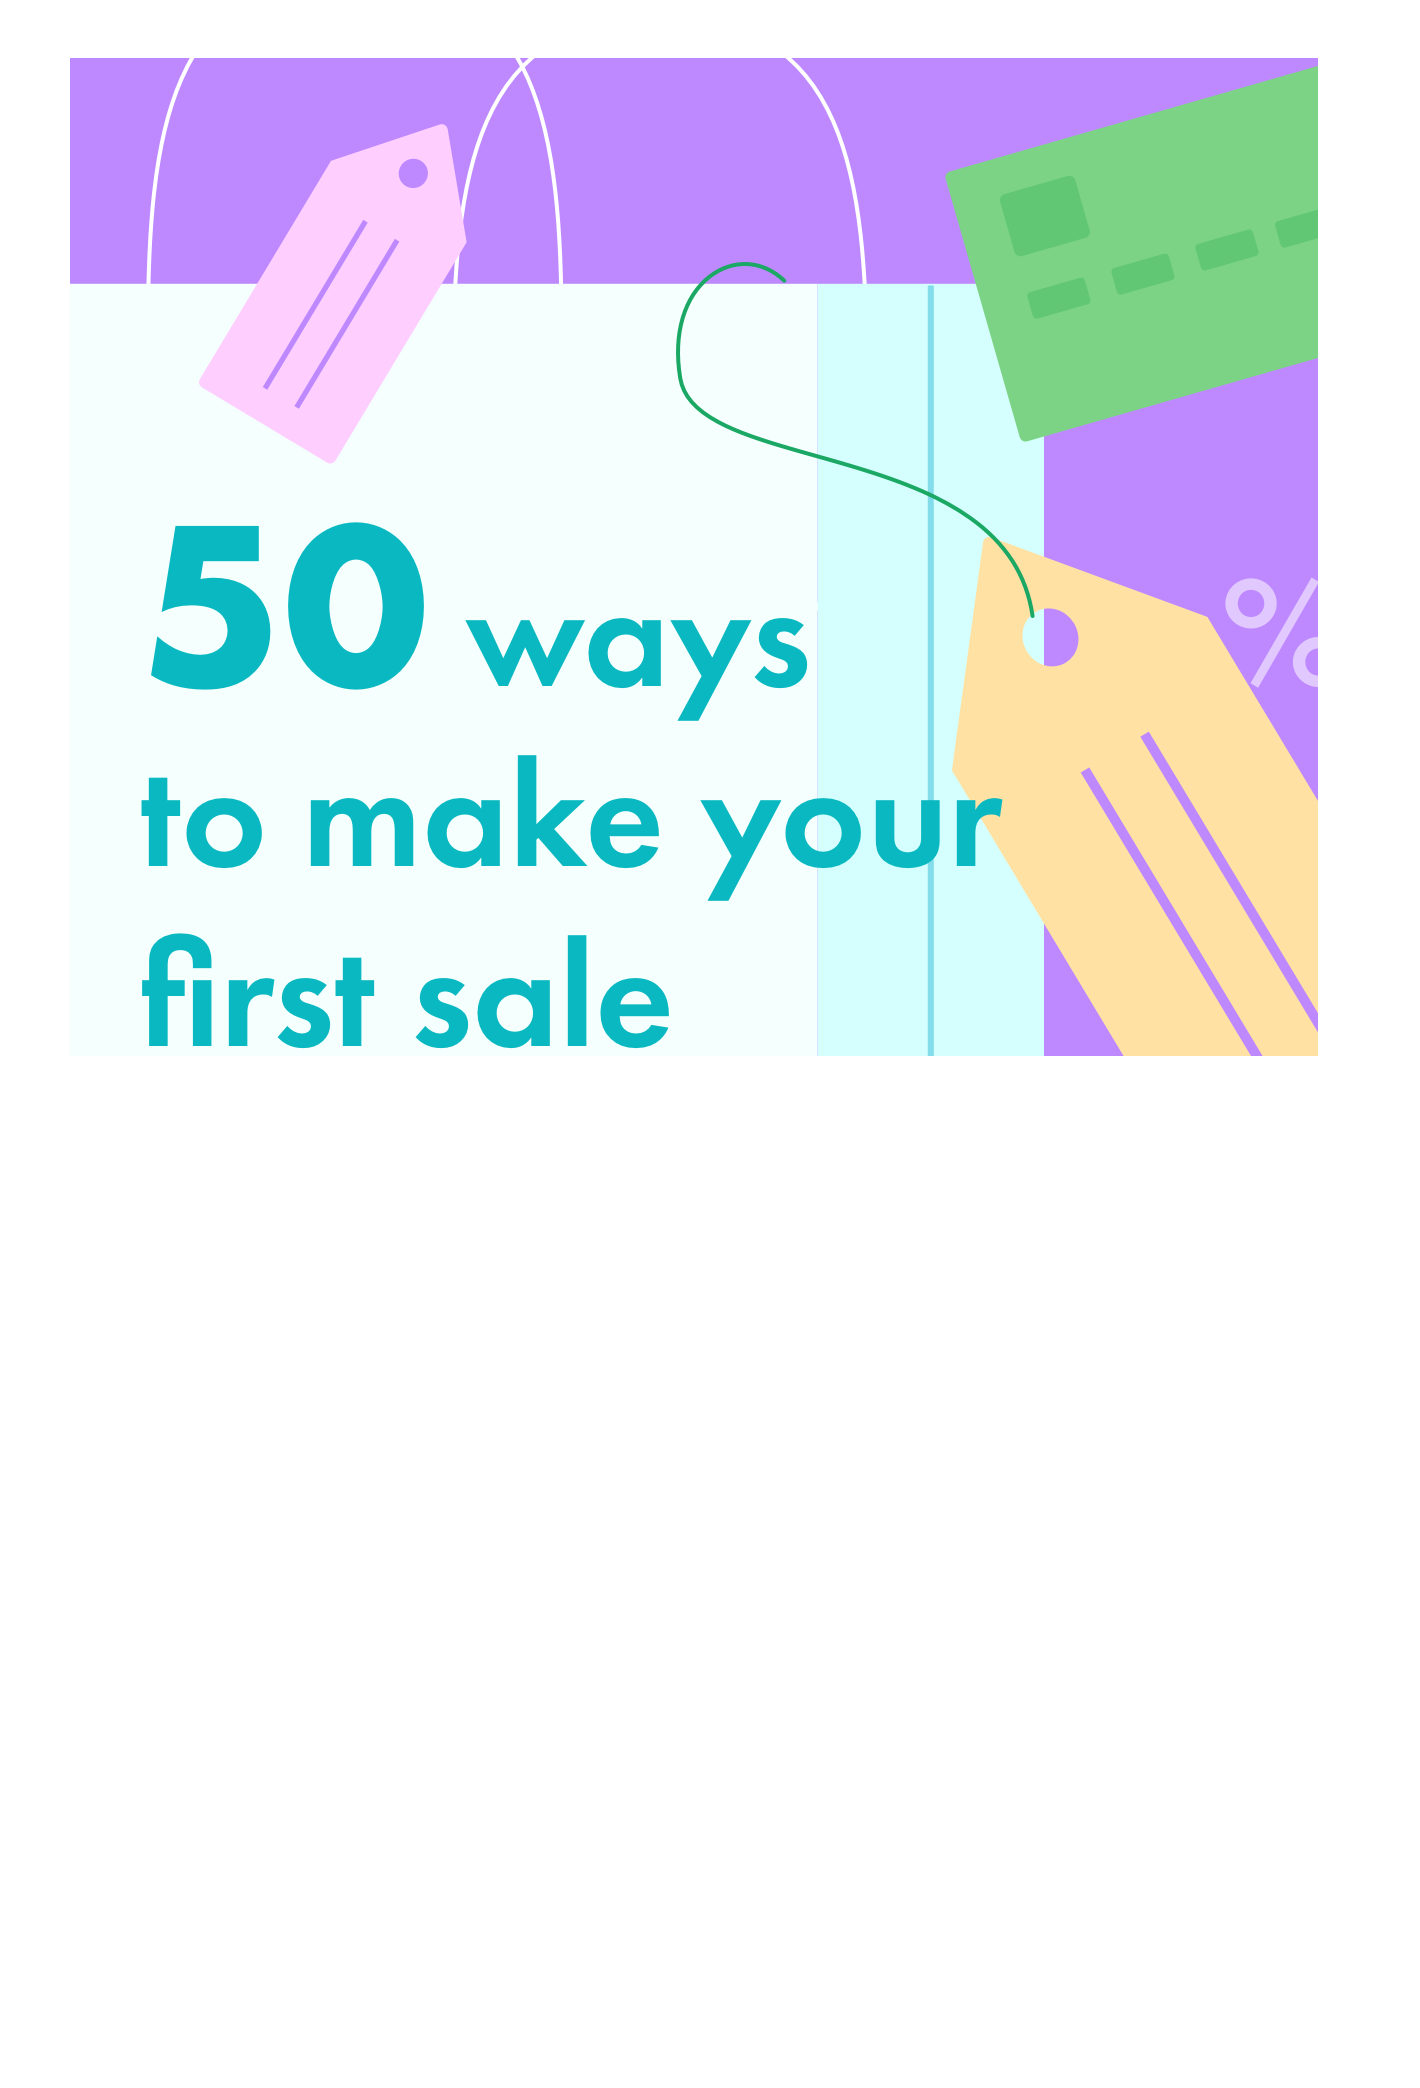 <http://resources.shoplo.com/download/50-ways-to-make-your-first-sale>  50 Ways to Make Your First Sale  Learn how to attract first customers Download ebook  <http://resources.shoplo.com/download/50-ways-to-make-your-first-sale>